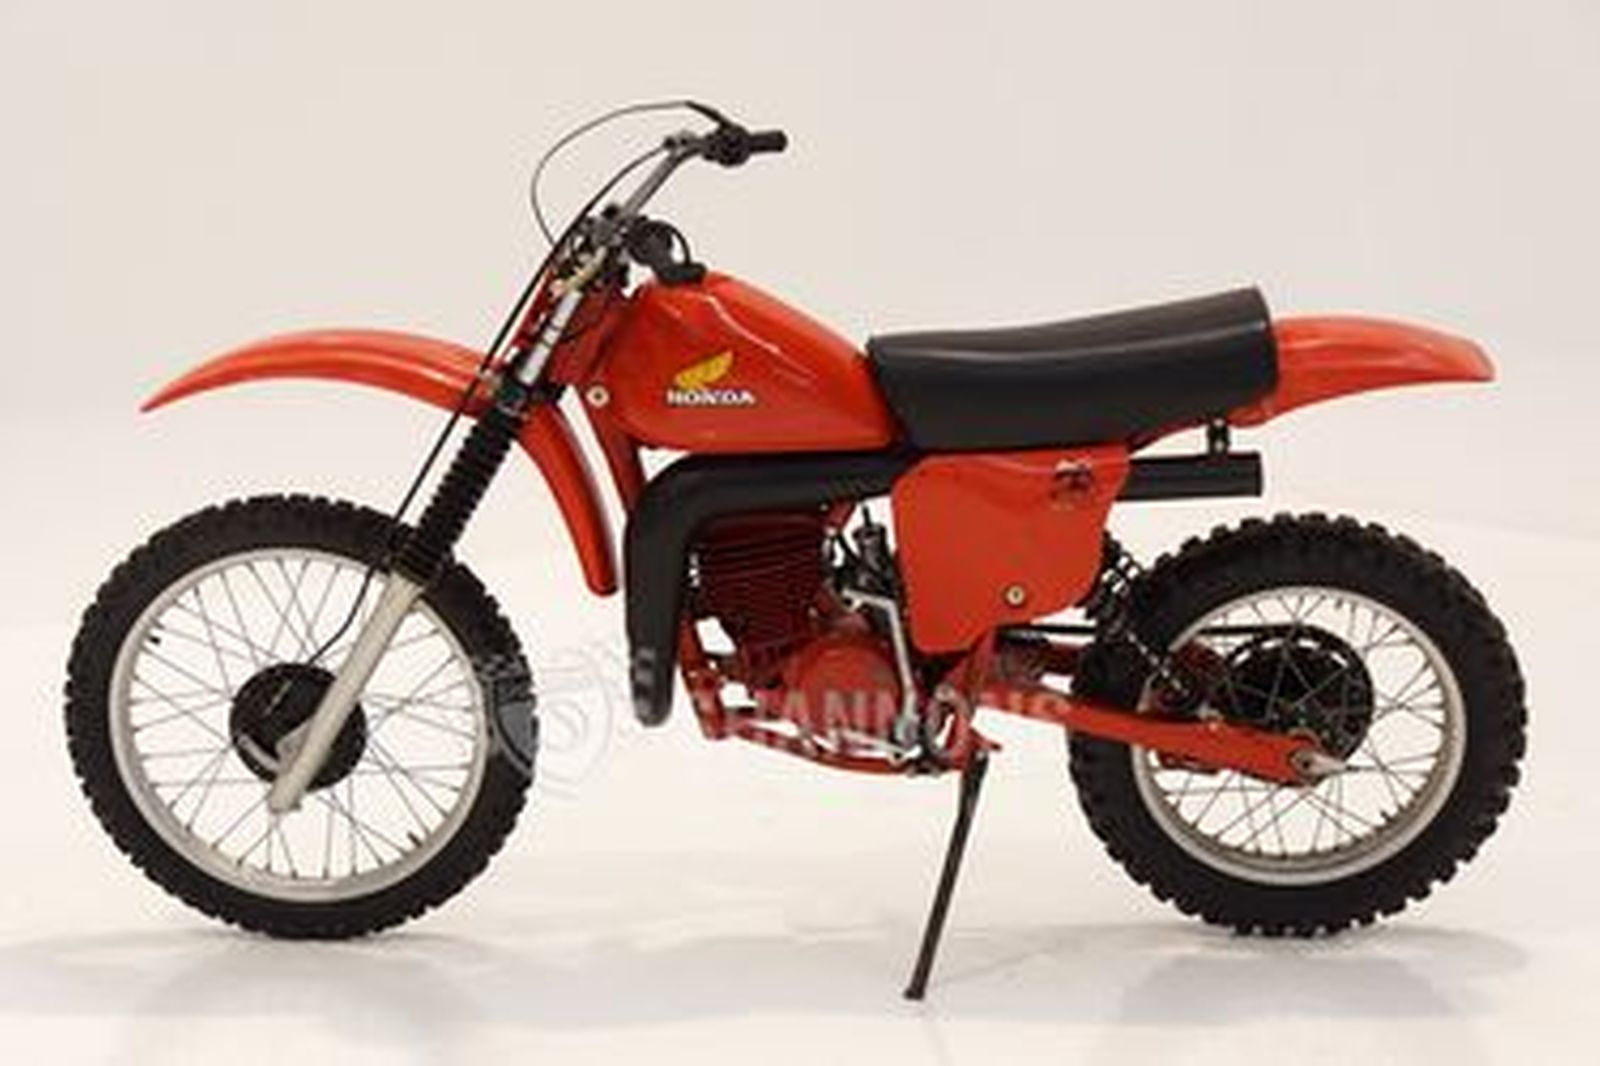 hight resolution of honda cr250 rz elisnore motorcycle